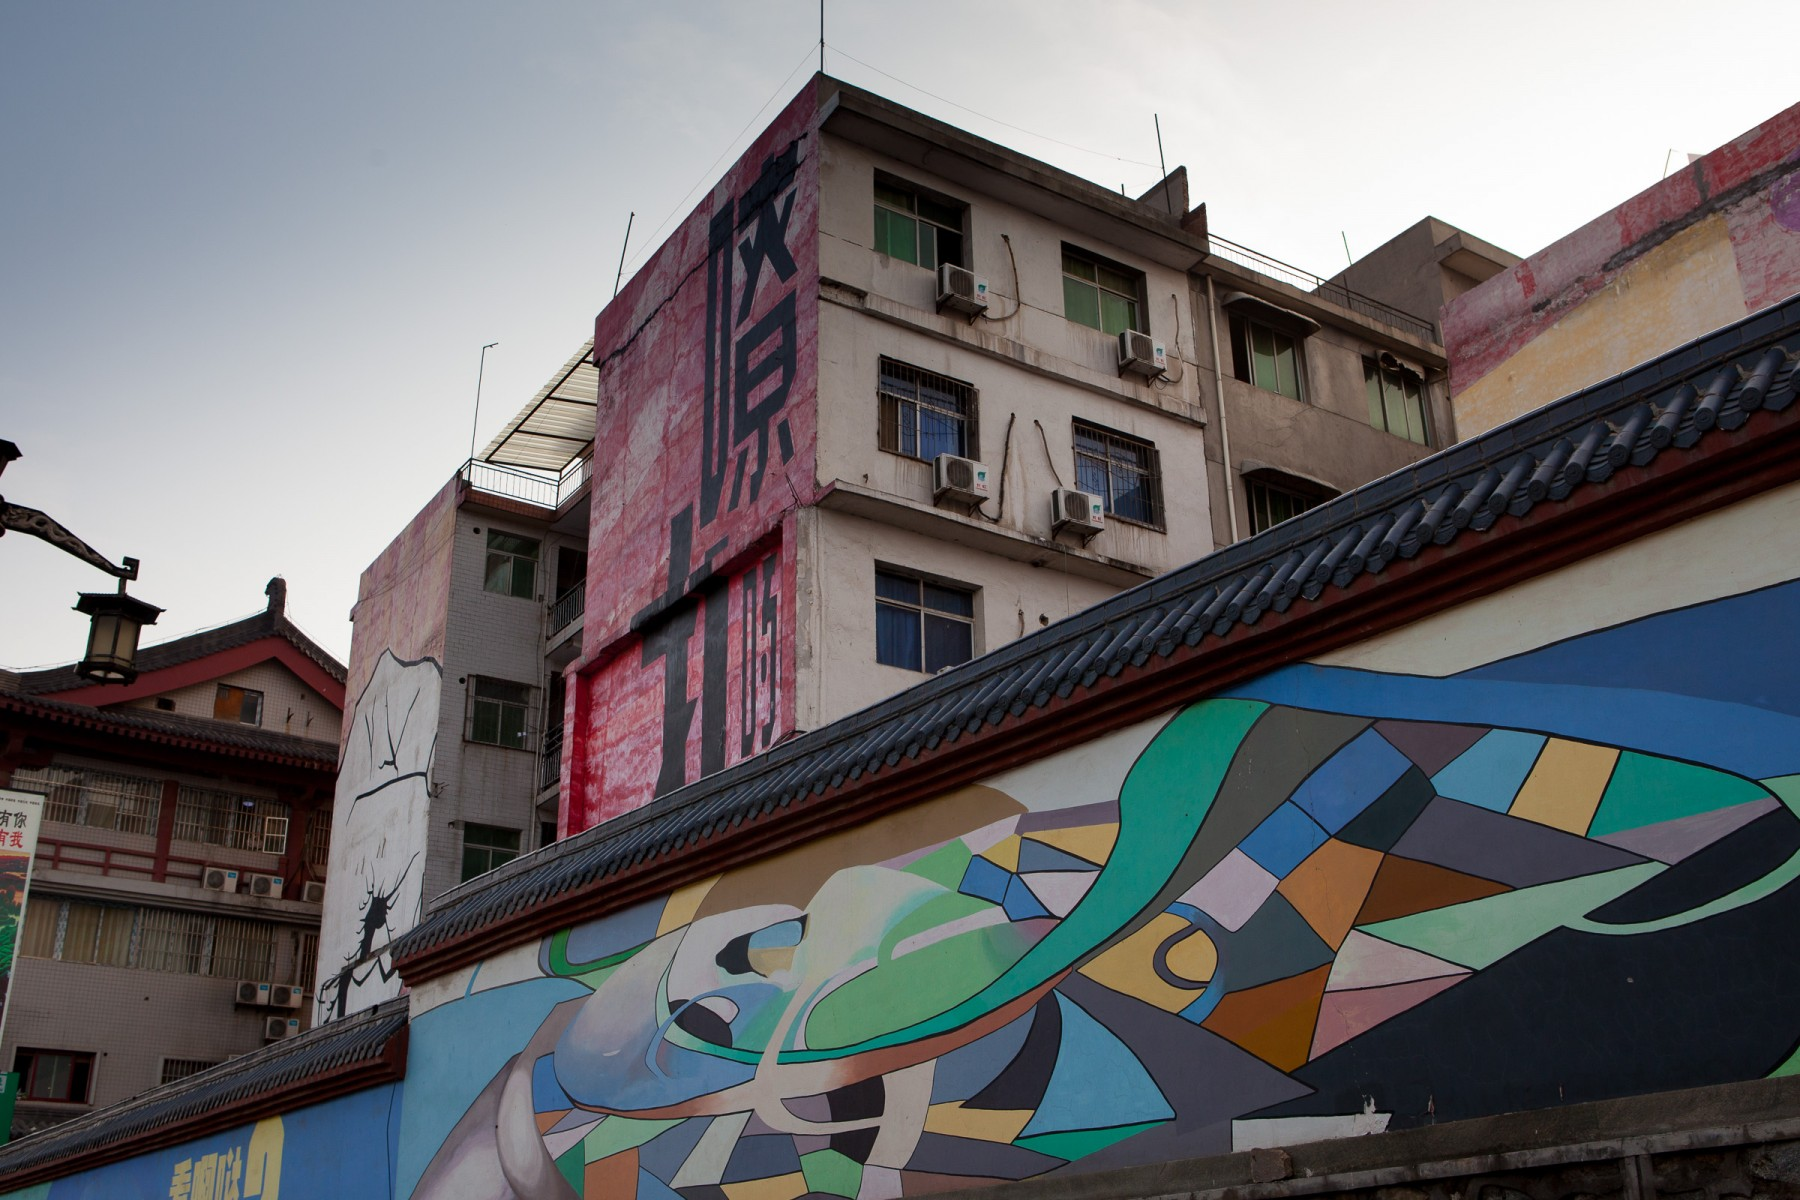 Murals on apartments in Yanta district Xi'an